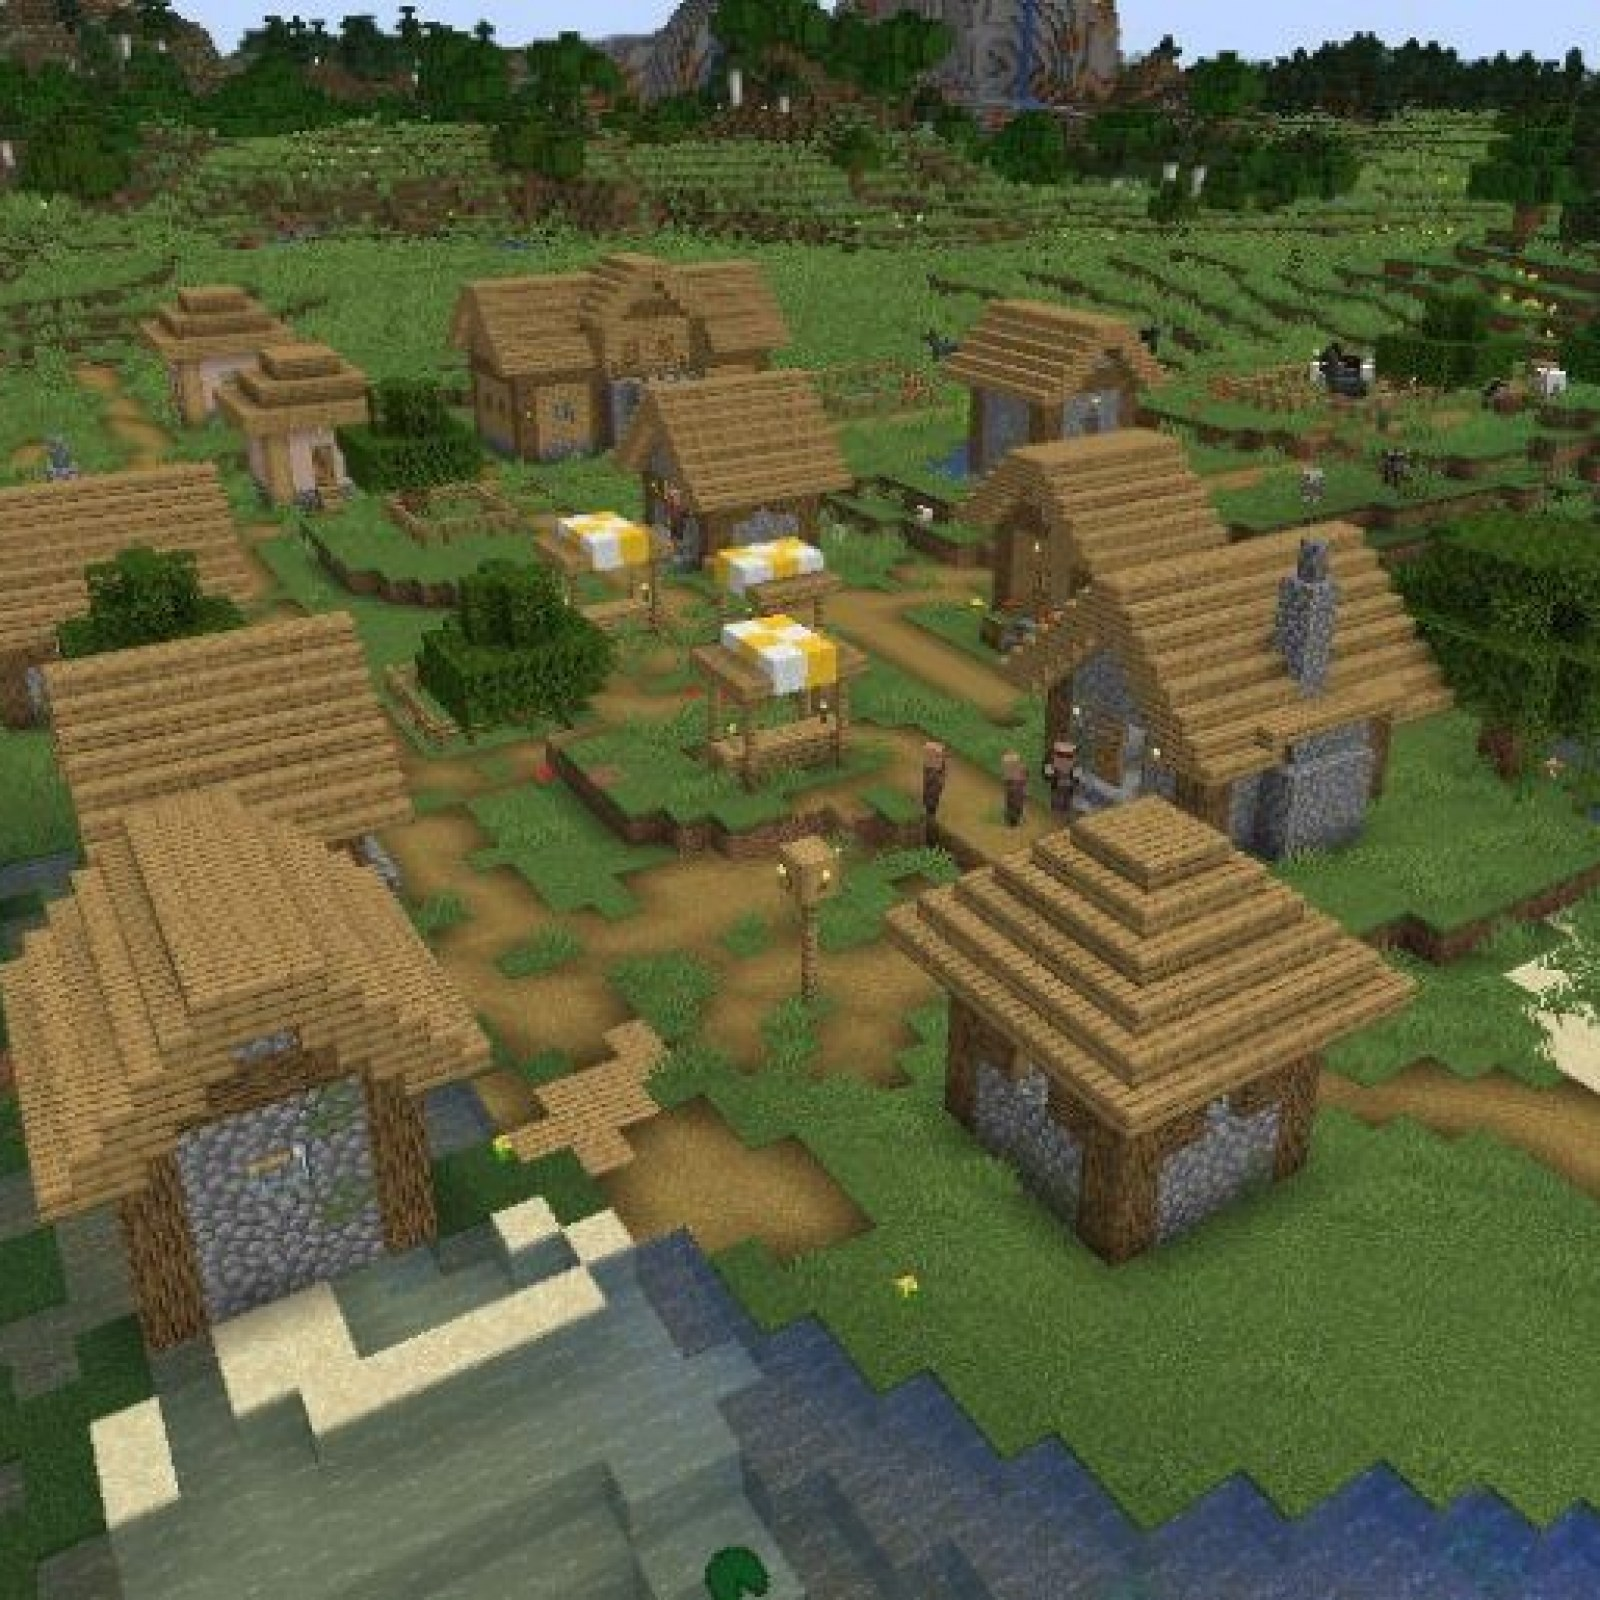 Minecraft 1141 Pre Release 1 Snapshot Brings Tons Of